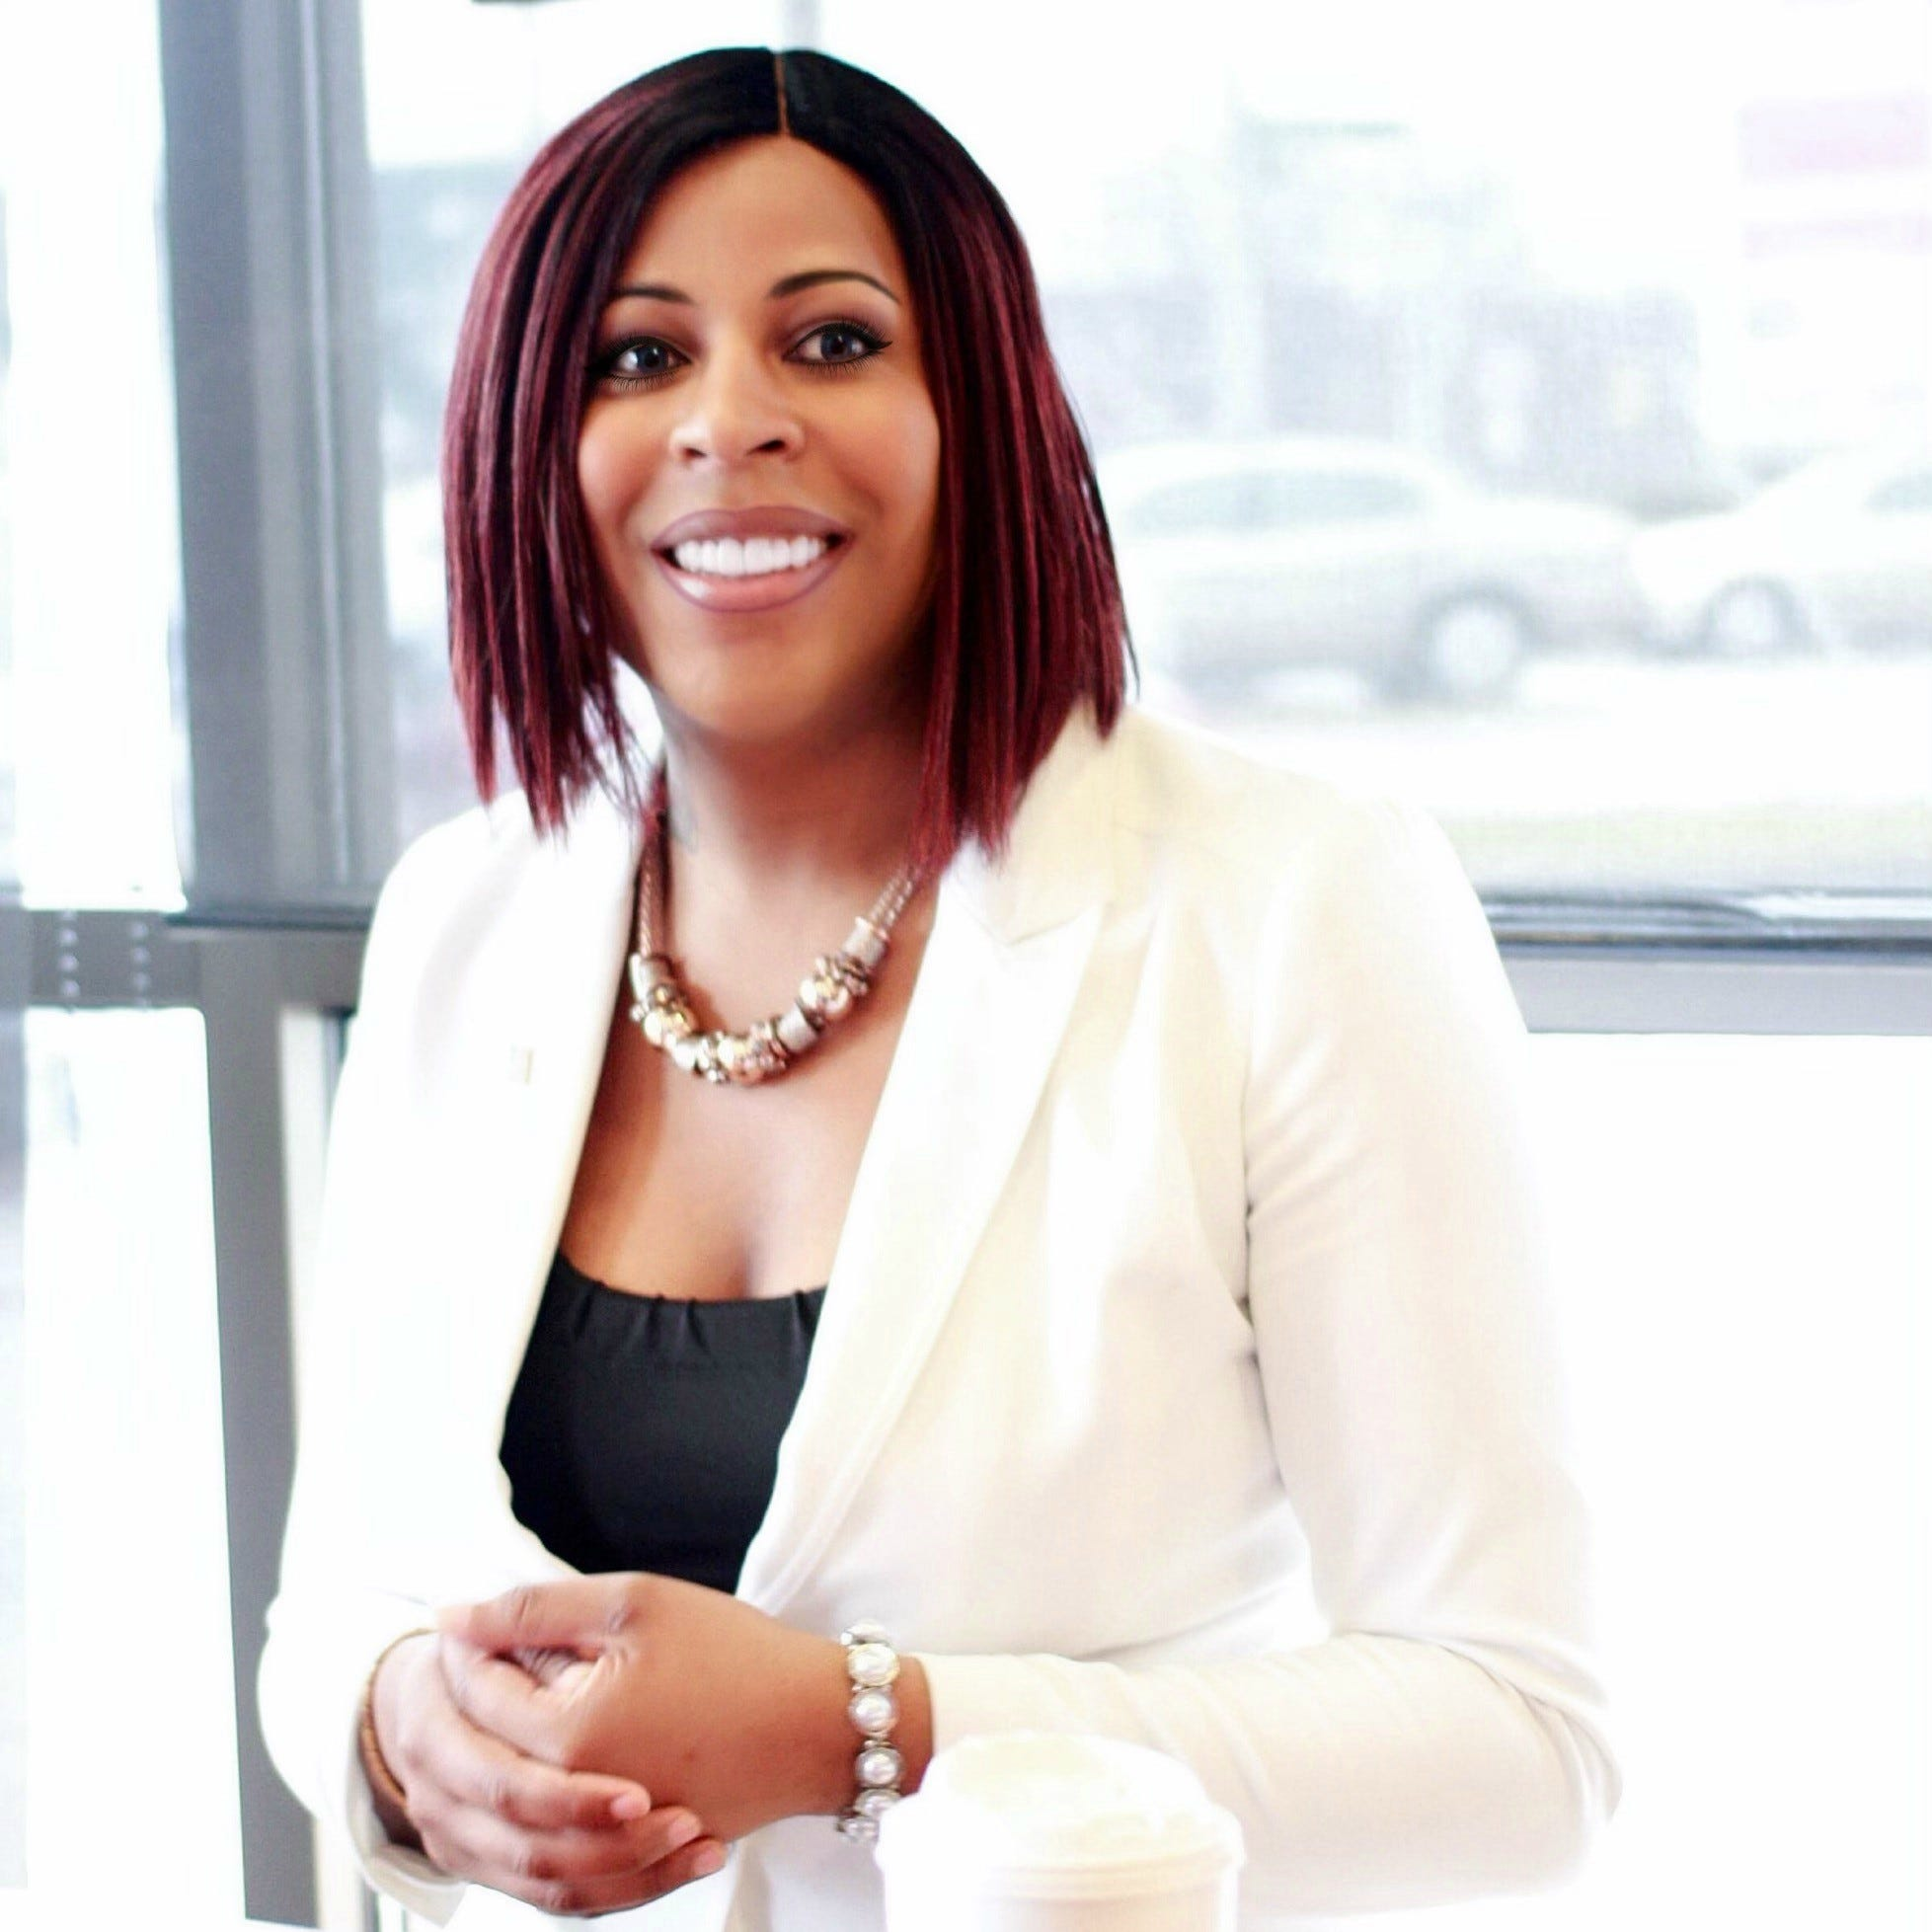 Meet presidential candidate Pam Rocker: She's transgender, wants free cars and legal marijuana